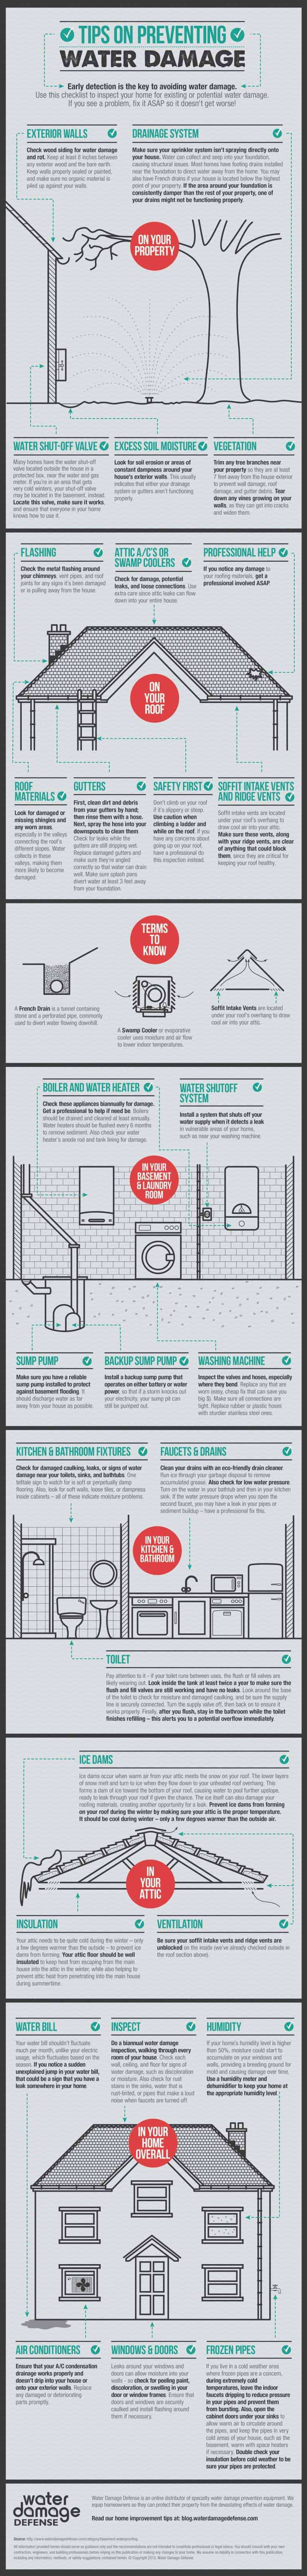 Tips On Preventing Water Damage To Your Home